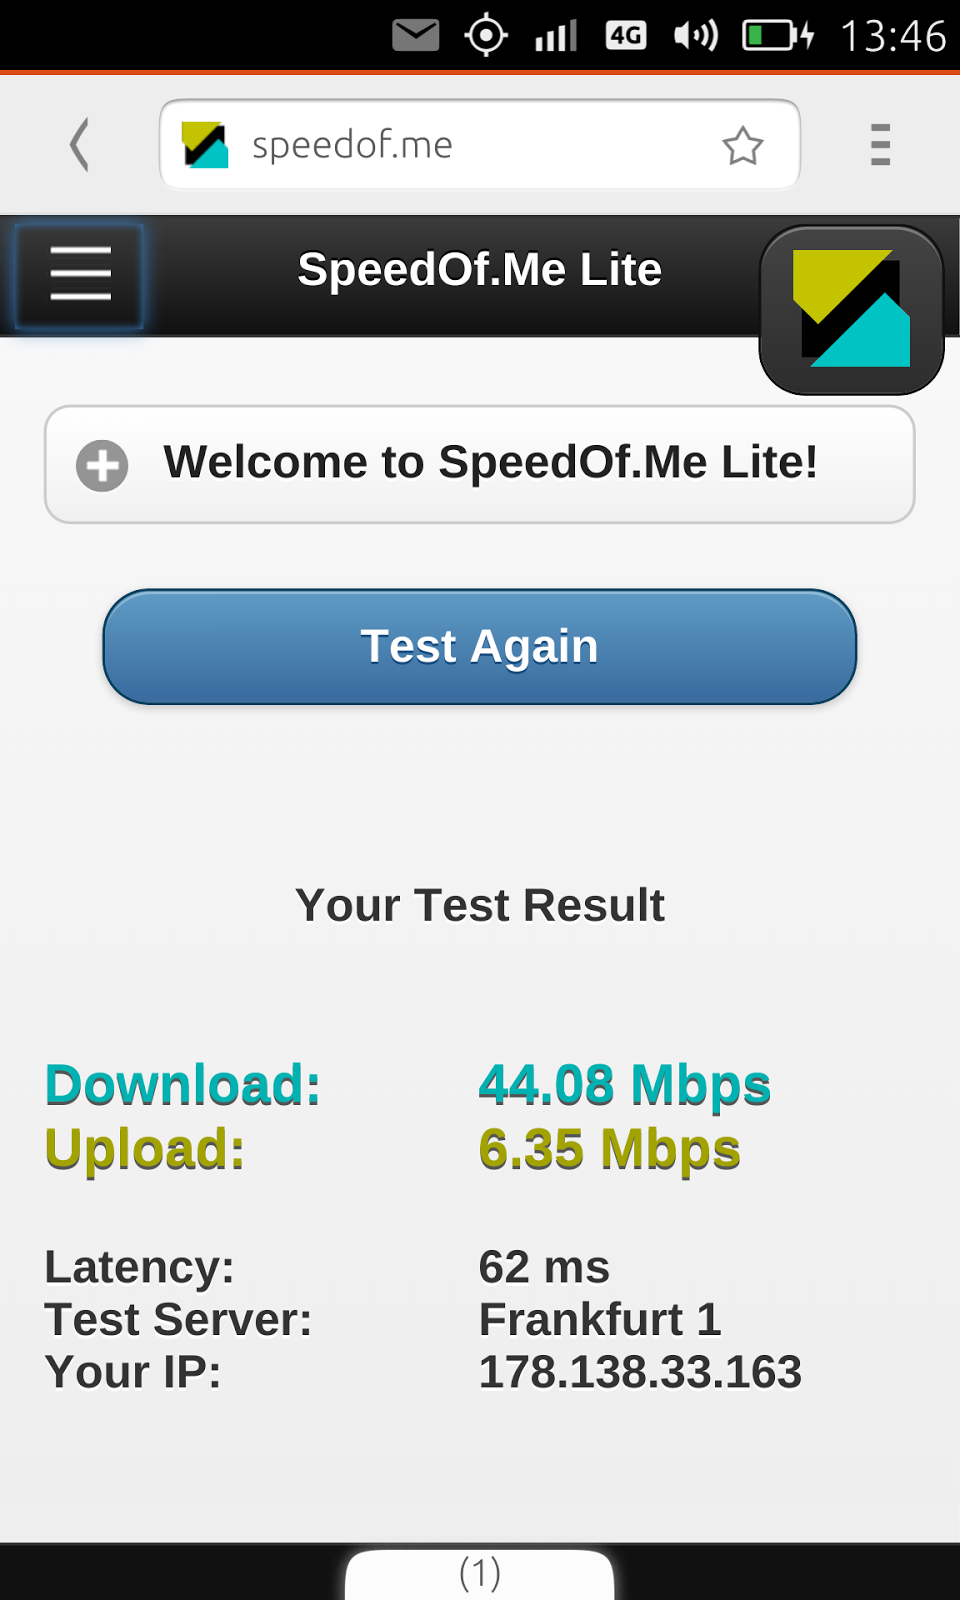 4g-speedtest